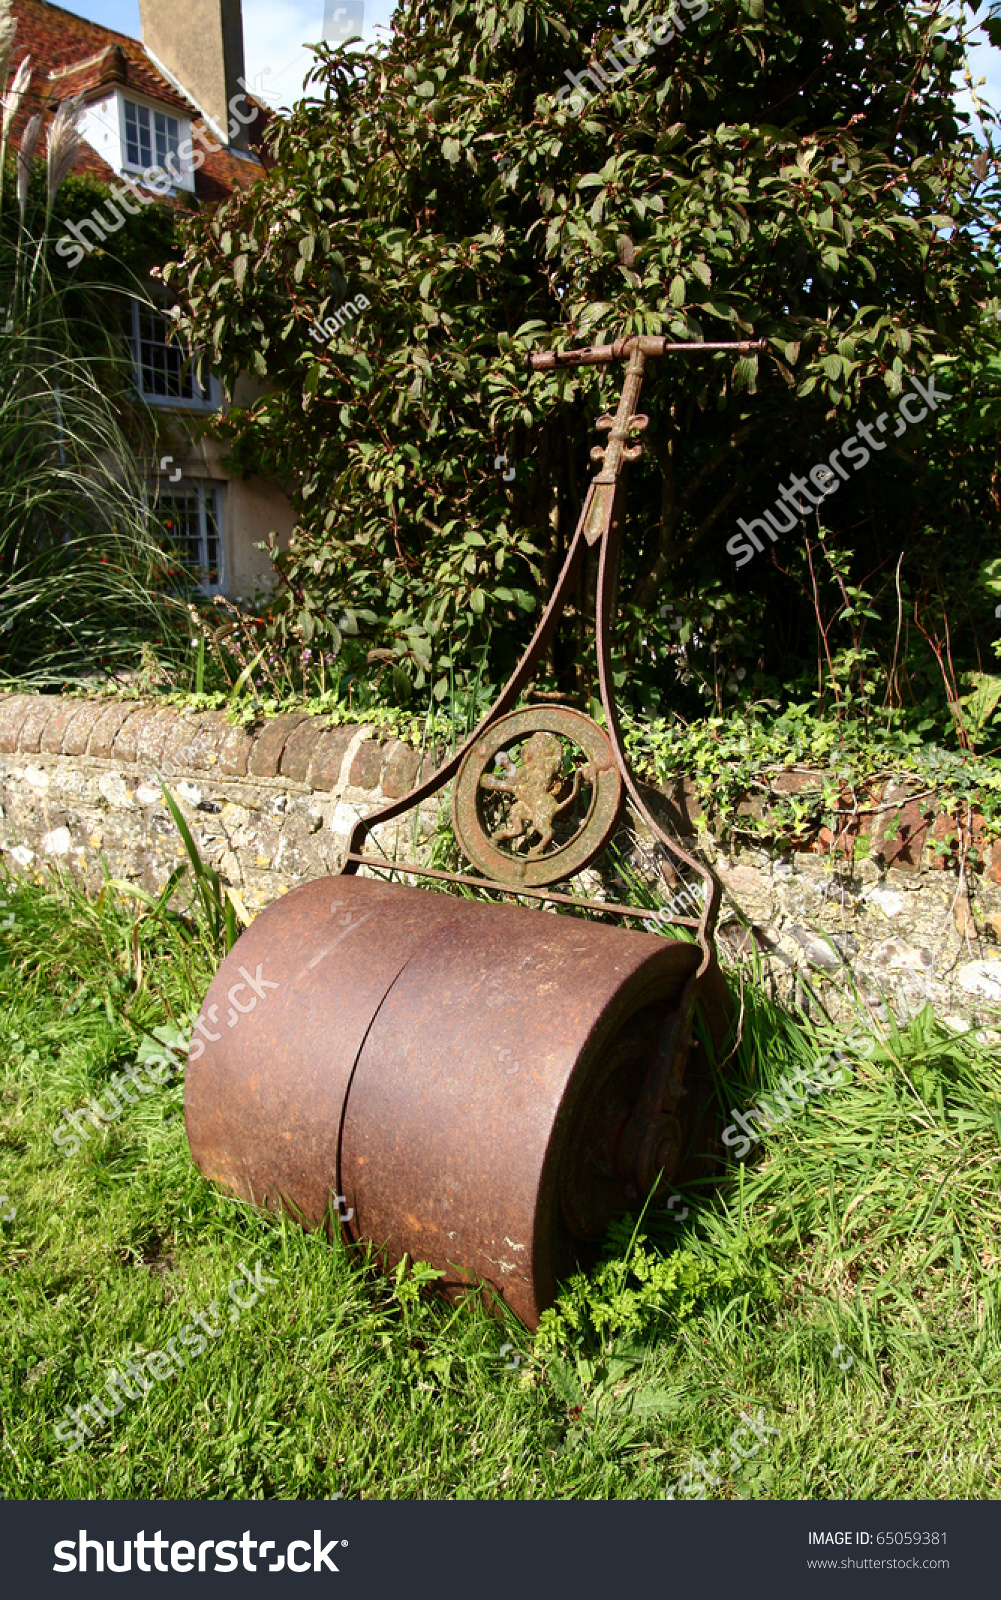 Garden Or Lawn Roller In Rusty Iron Left By Stone Wall With House